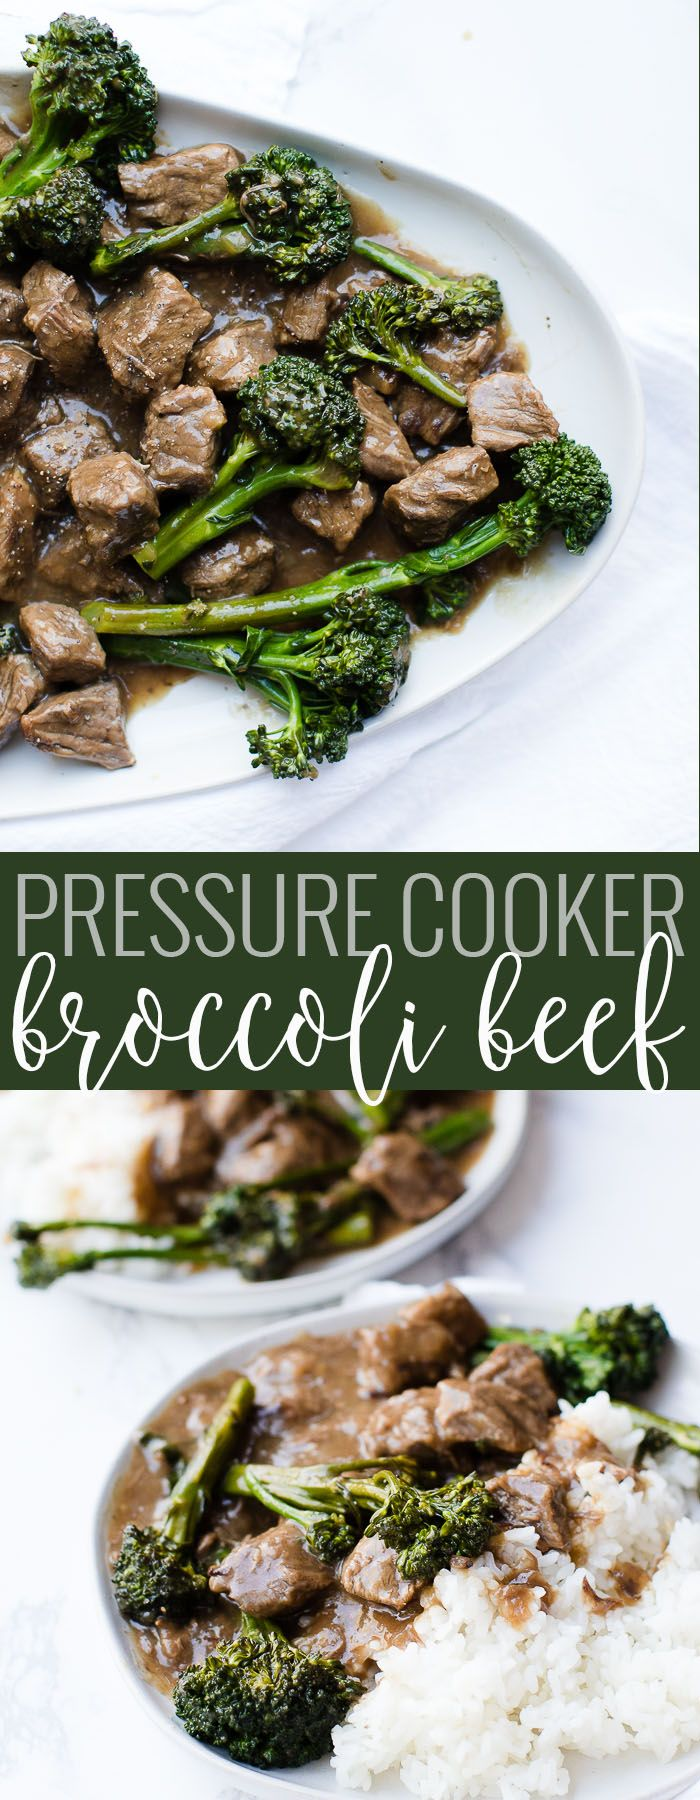 Easy, fast delicious beef and broccoli recipe. Also included is instructions on how to adapt the recipe for pressure cooker beef and broccoli.